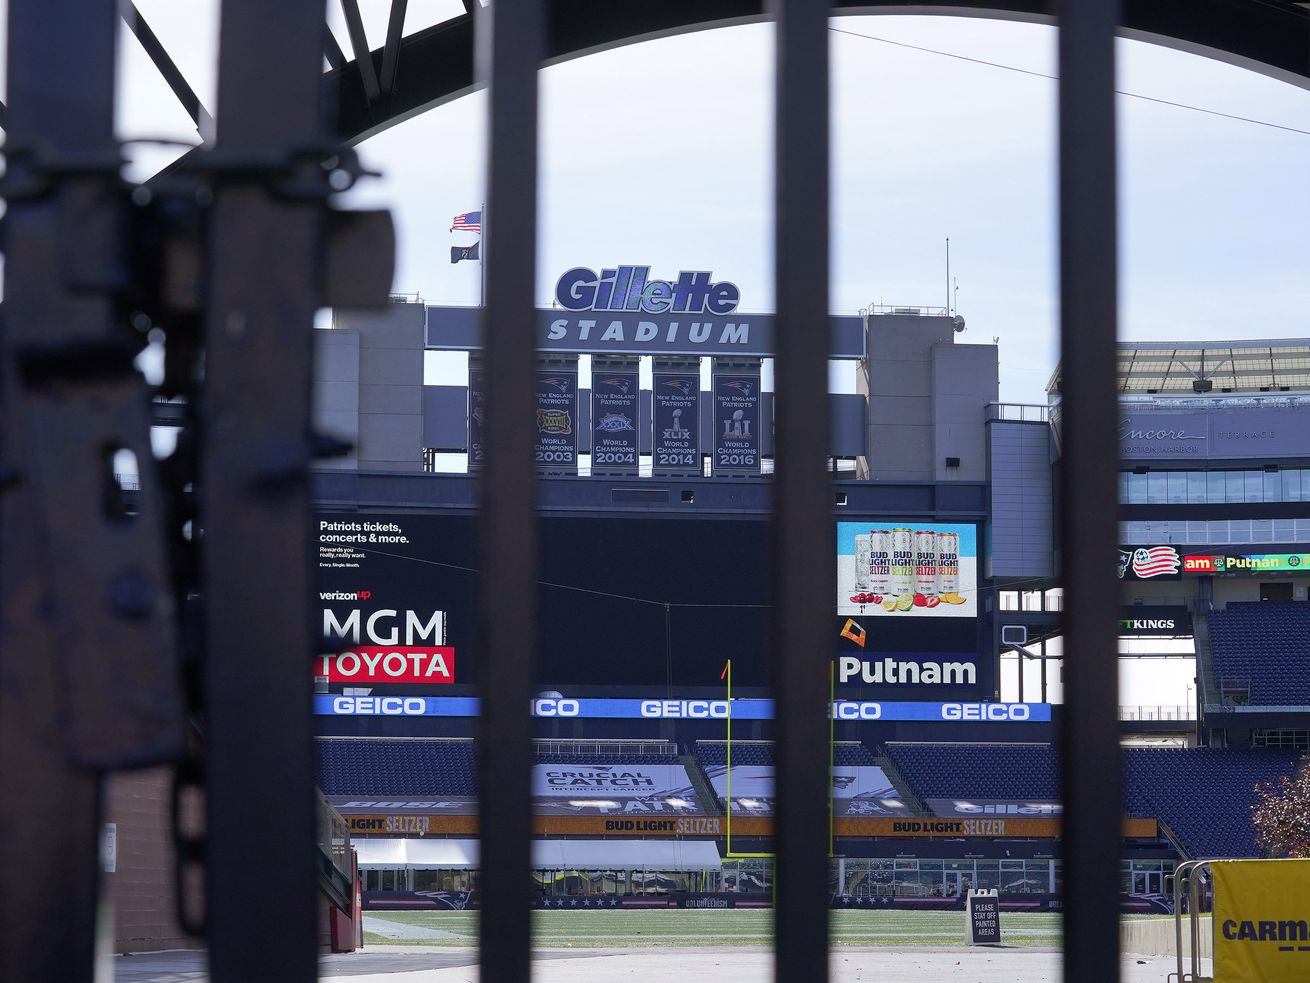 The Patriots' next game at Gillette Stadium could be in jeopardy.